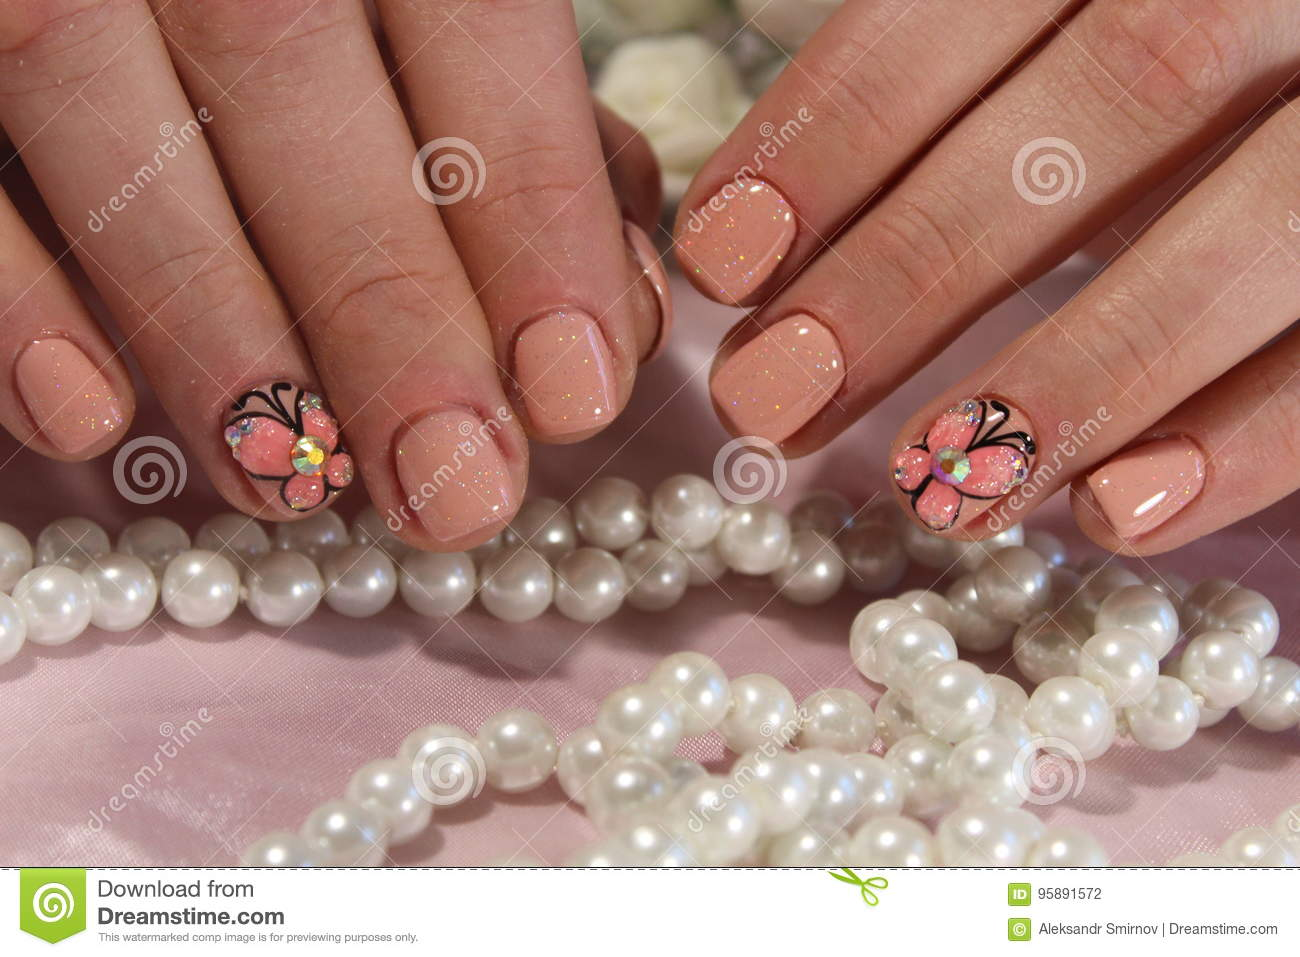 Youth manicure with butterfly